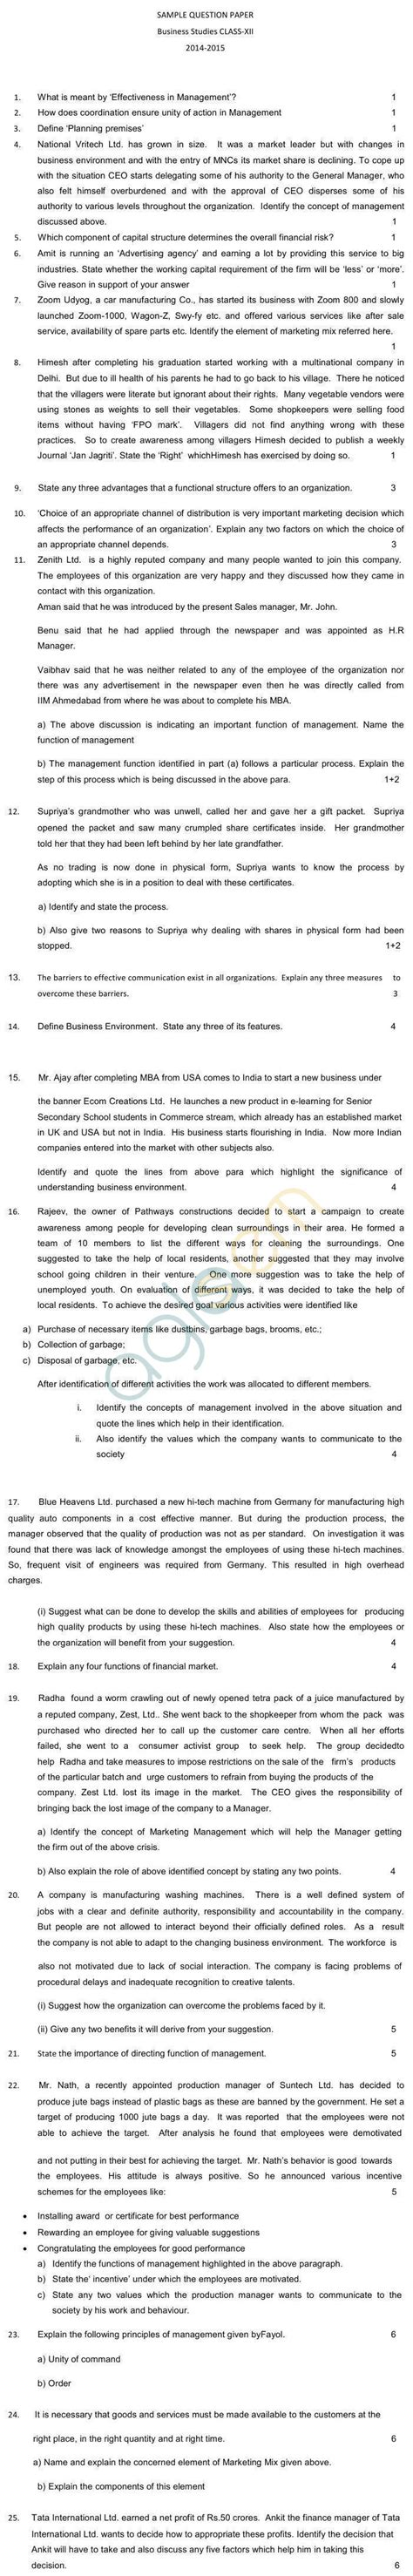 cbse sle papers 2015 2016 for class 12 business studies